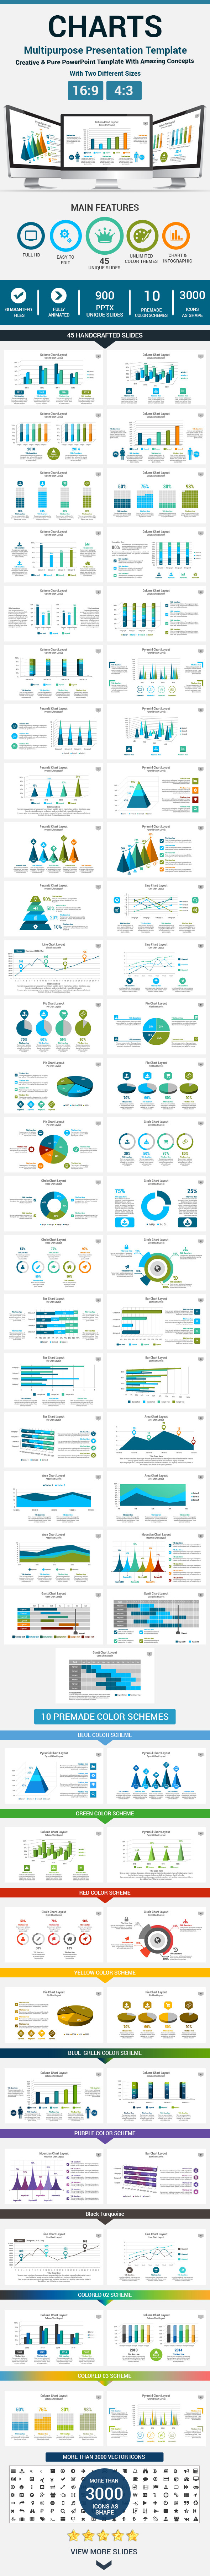 GraphicRiver Charts PowerPoint Presentation Template 11417928